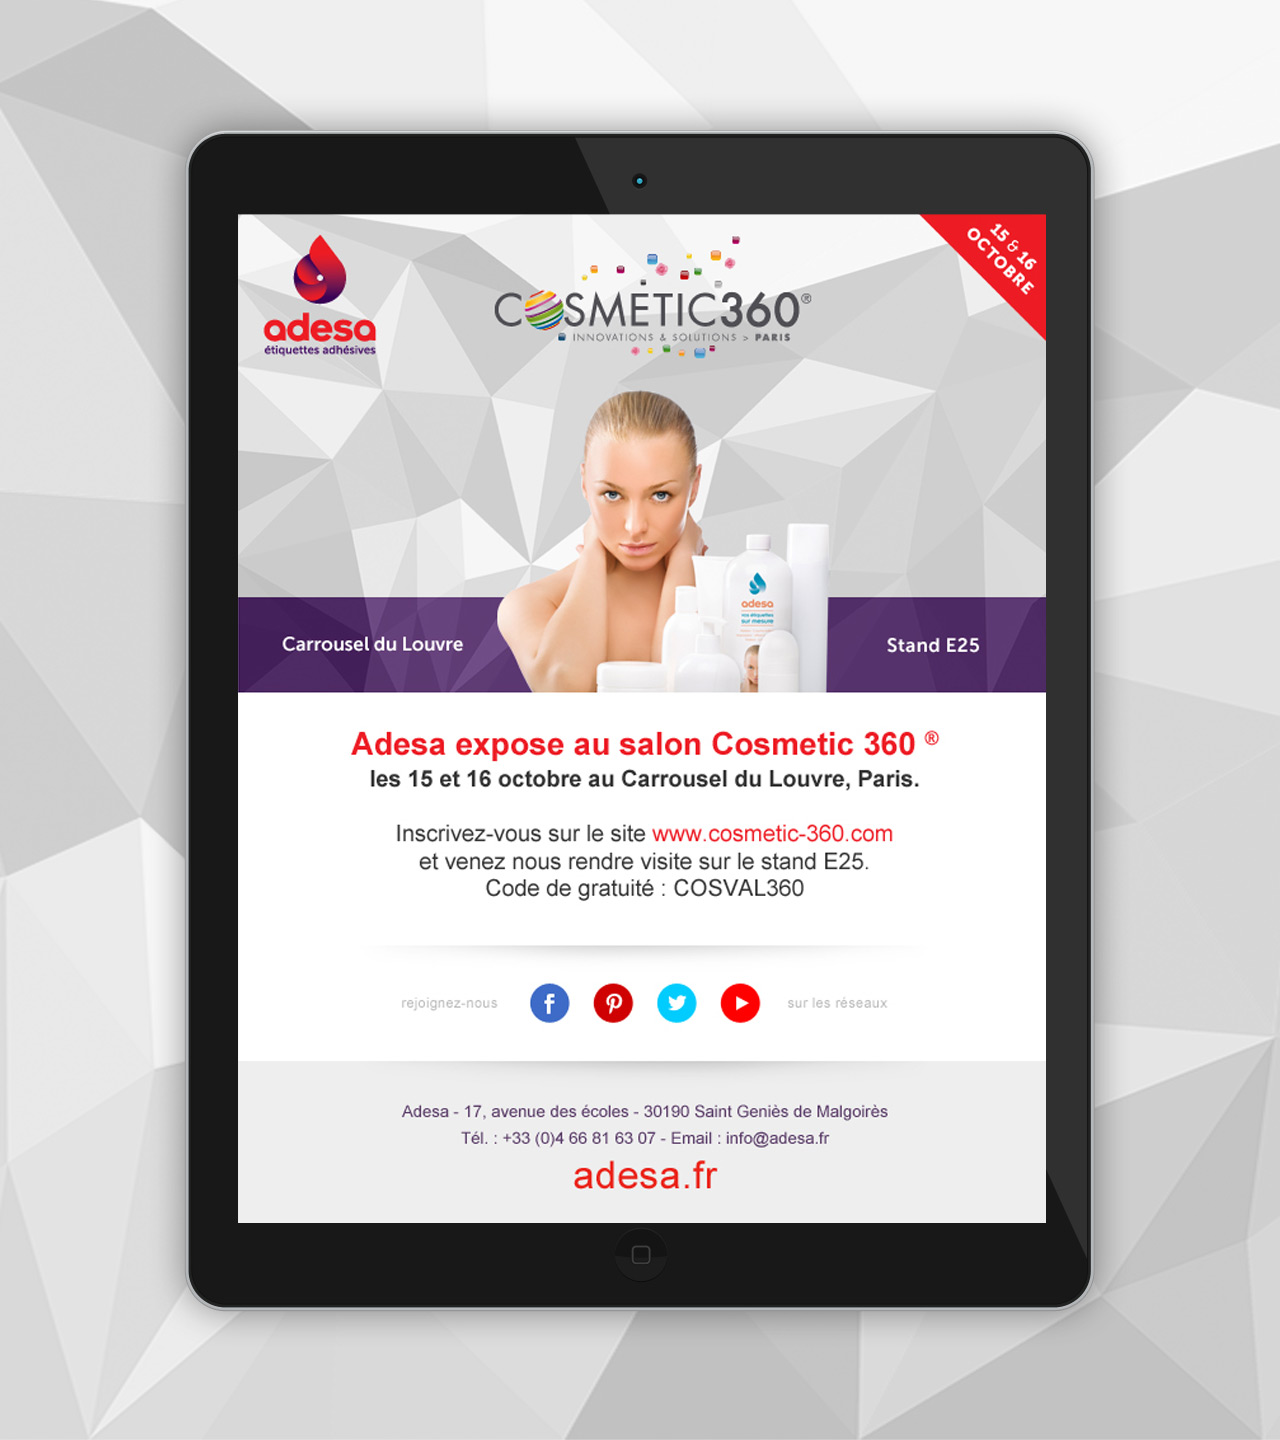 adesa-creation-newsletter-cosmetiques-salon-cosmetic-360-communication-caconcept-alexis-cretin-graphiste